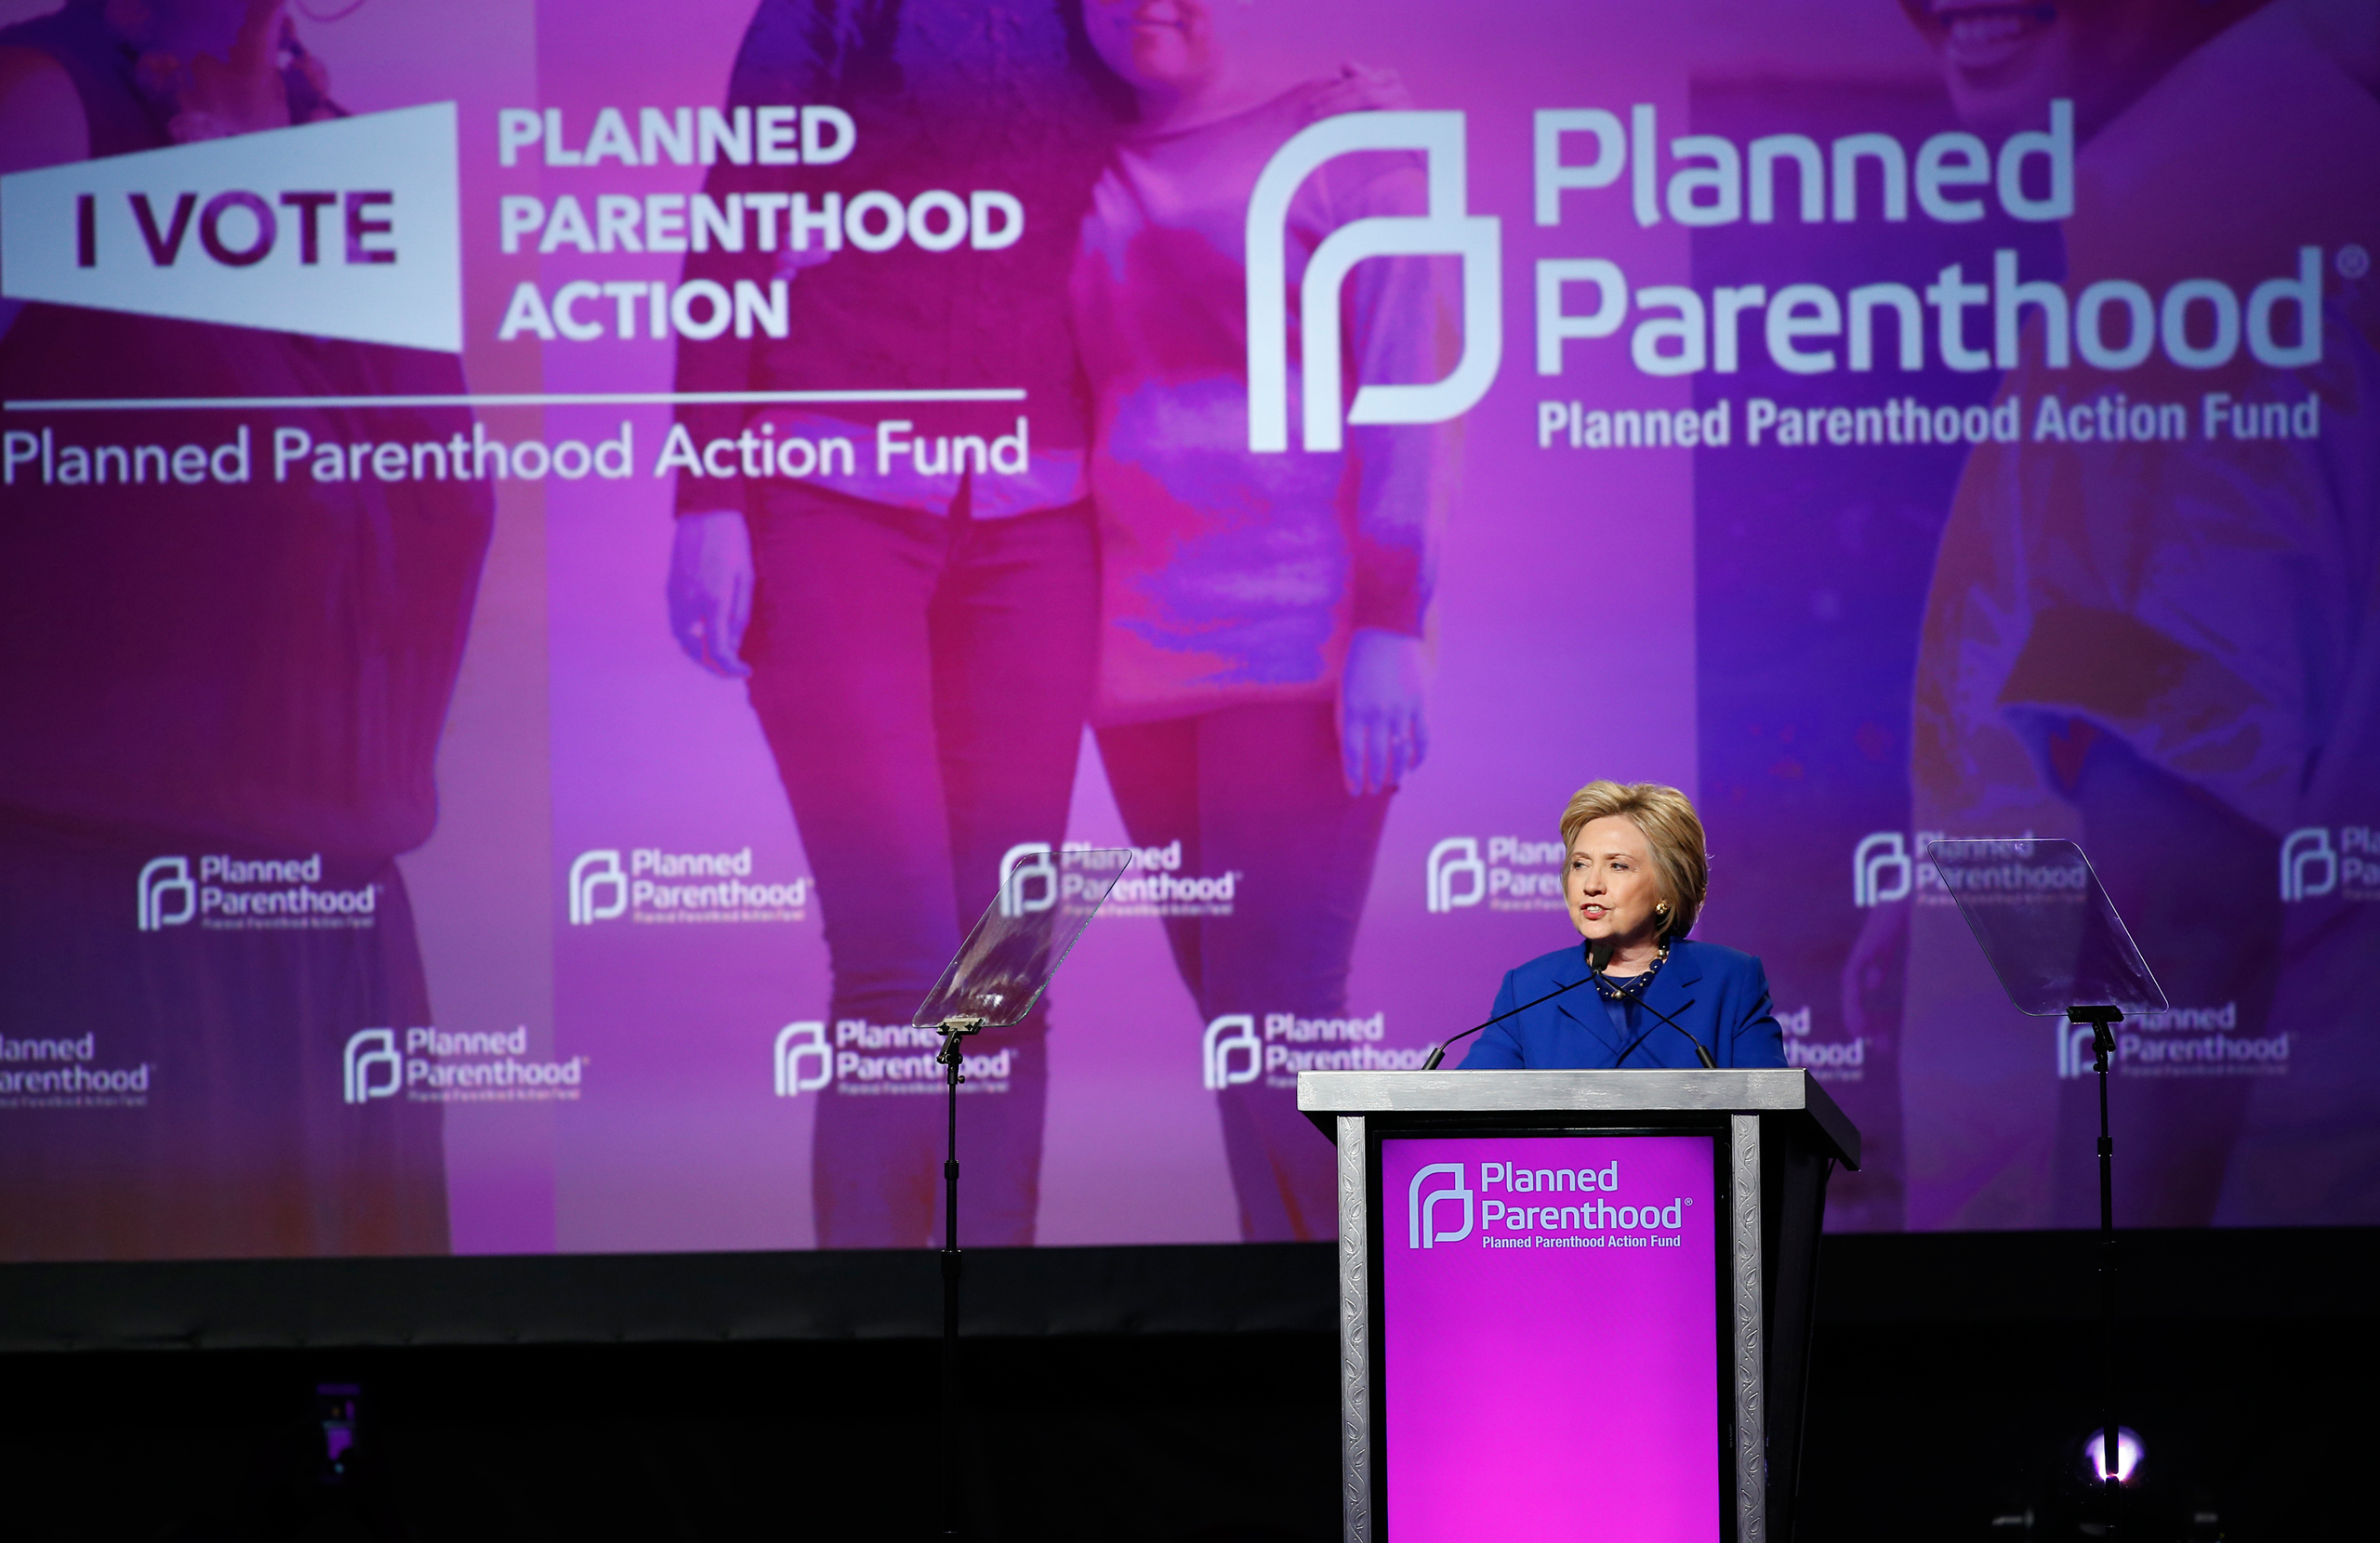 Democratic presidential candidate Hillary Clinton speaks during a Planned Parenthood Action Fund membership event in Washington on June 10, 2016.